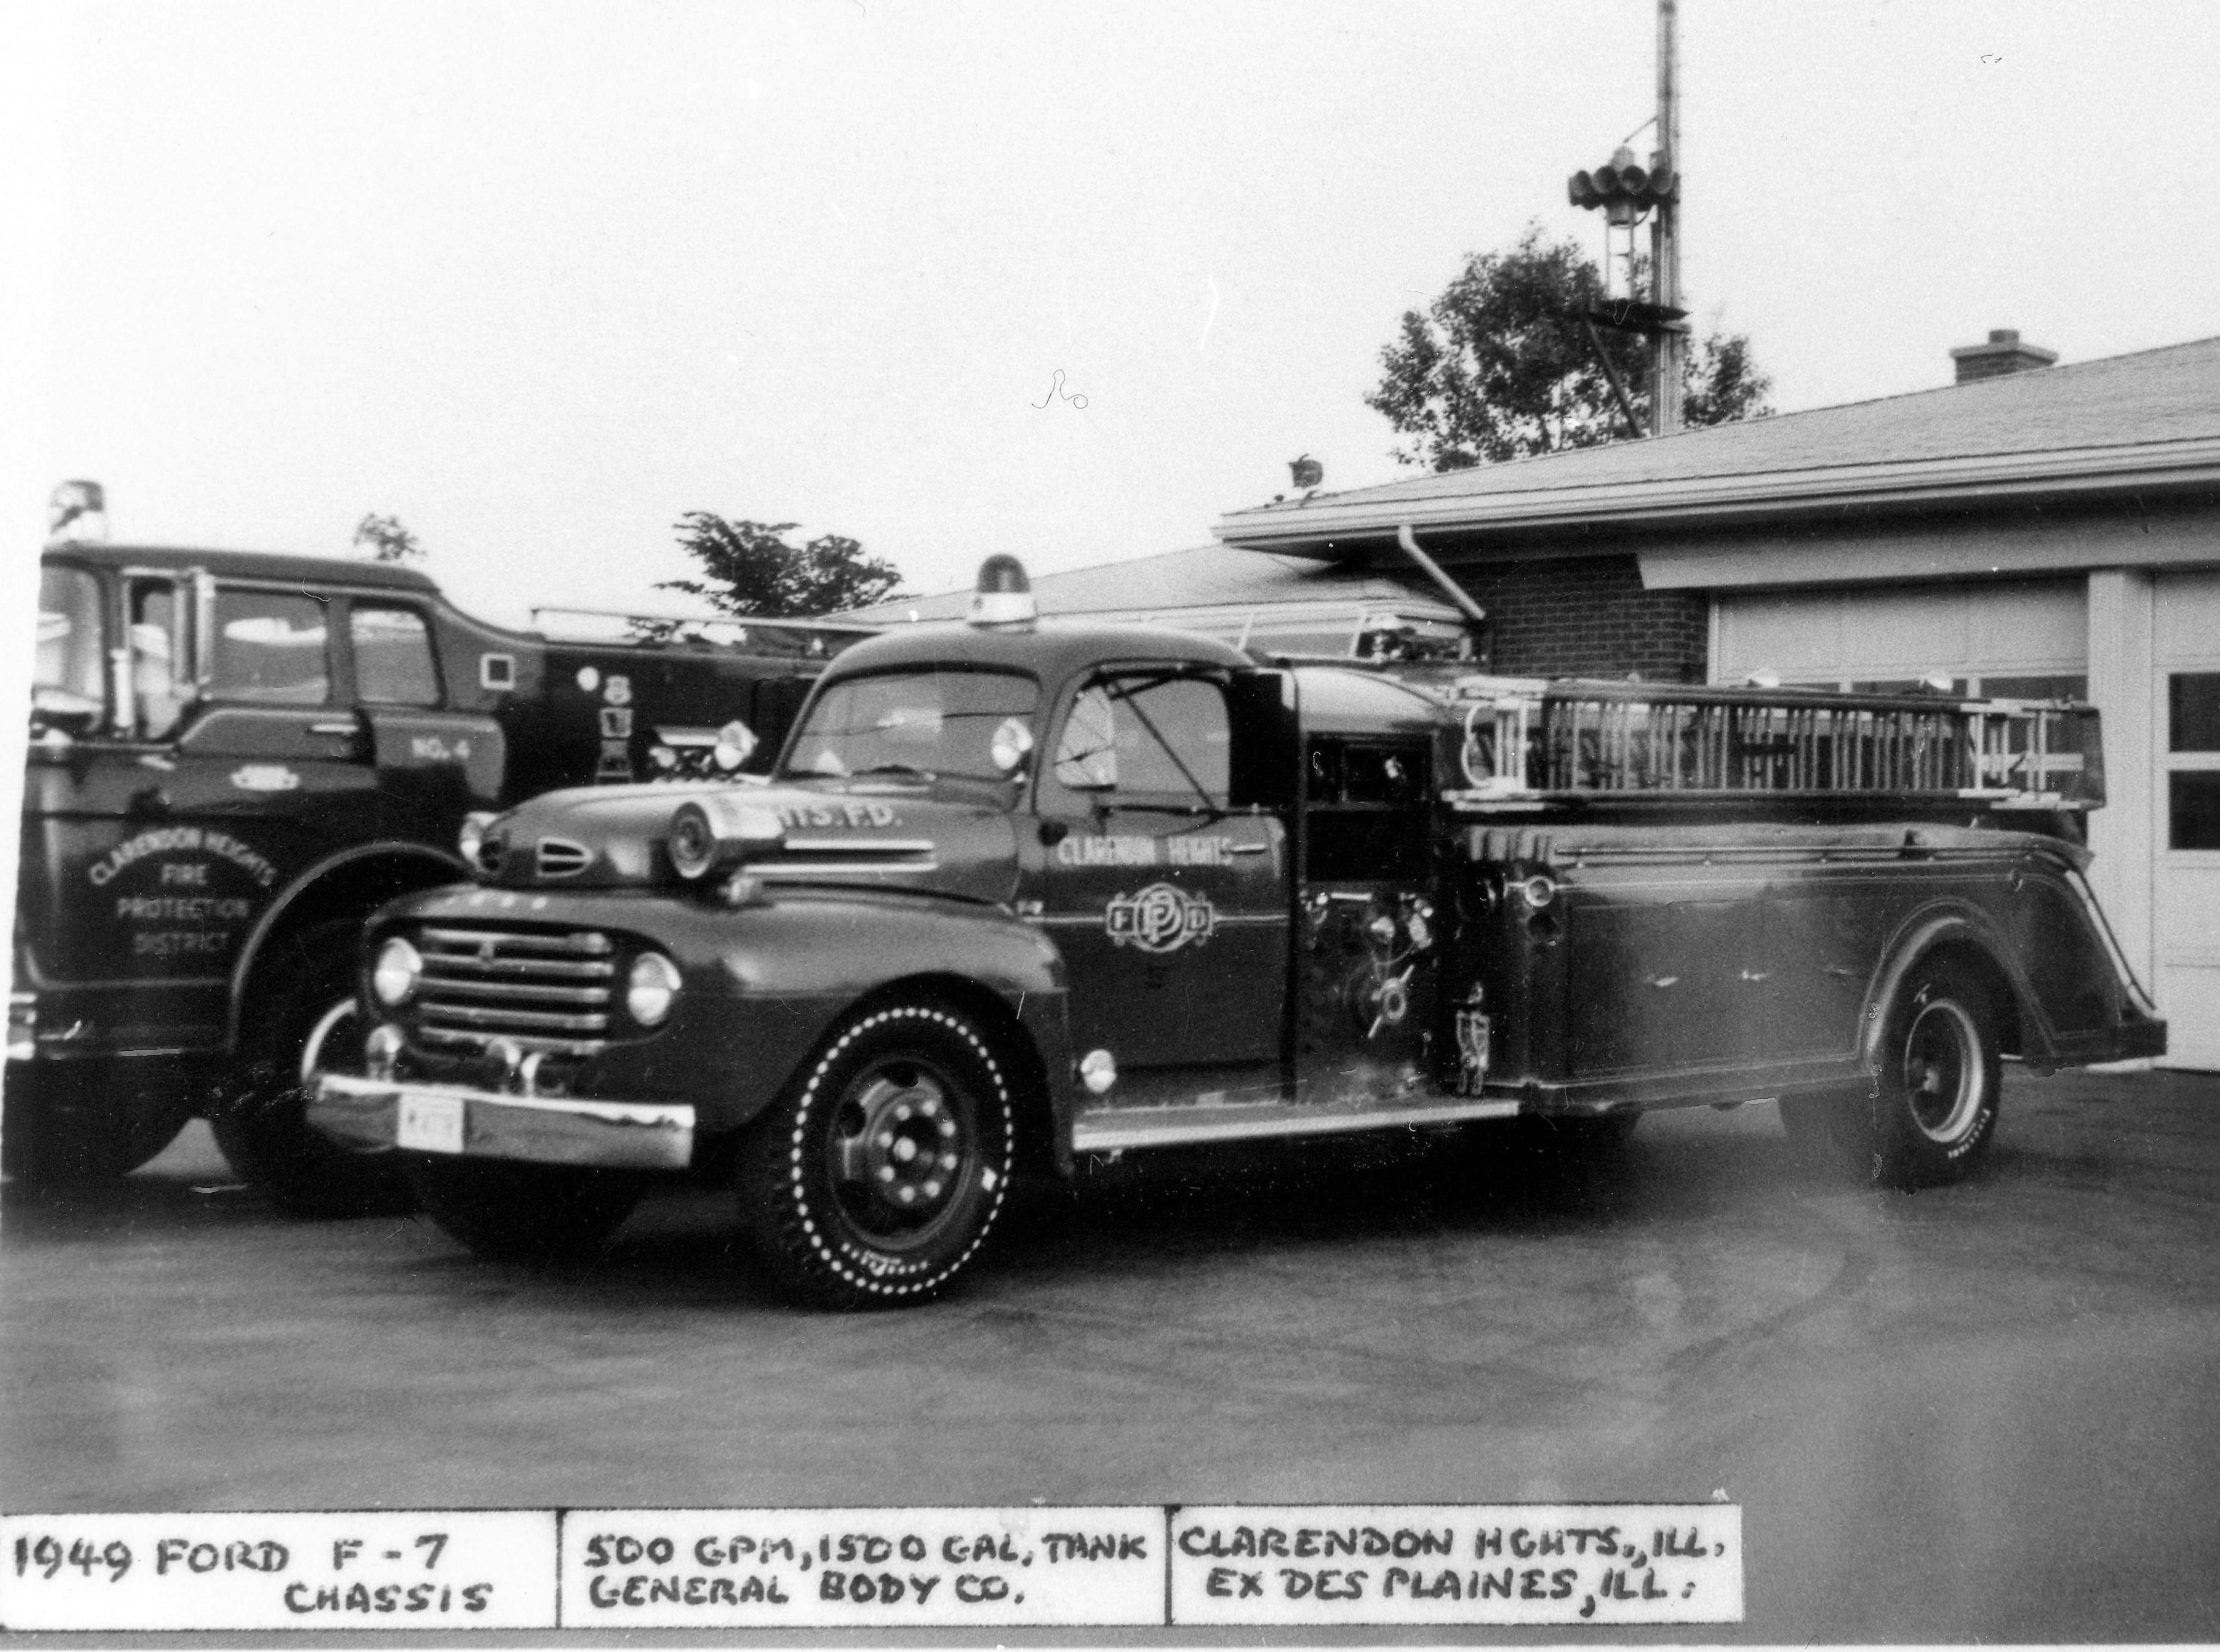 CLARENDON HEIGHTS SQUAD 392 1948 FORD F7 - GENERAL BODY 500-1500 X- DESPLAINES FD